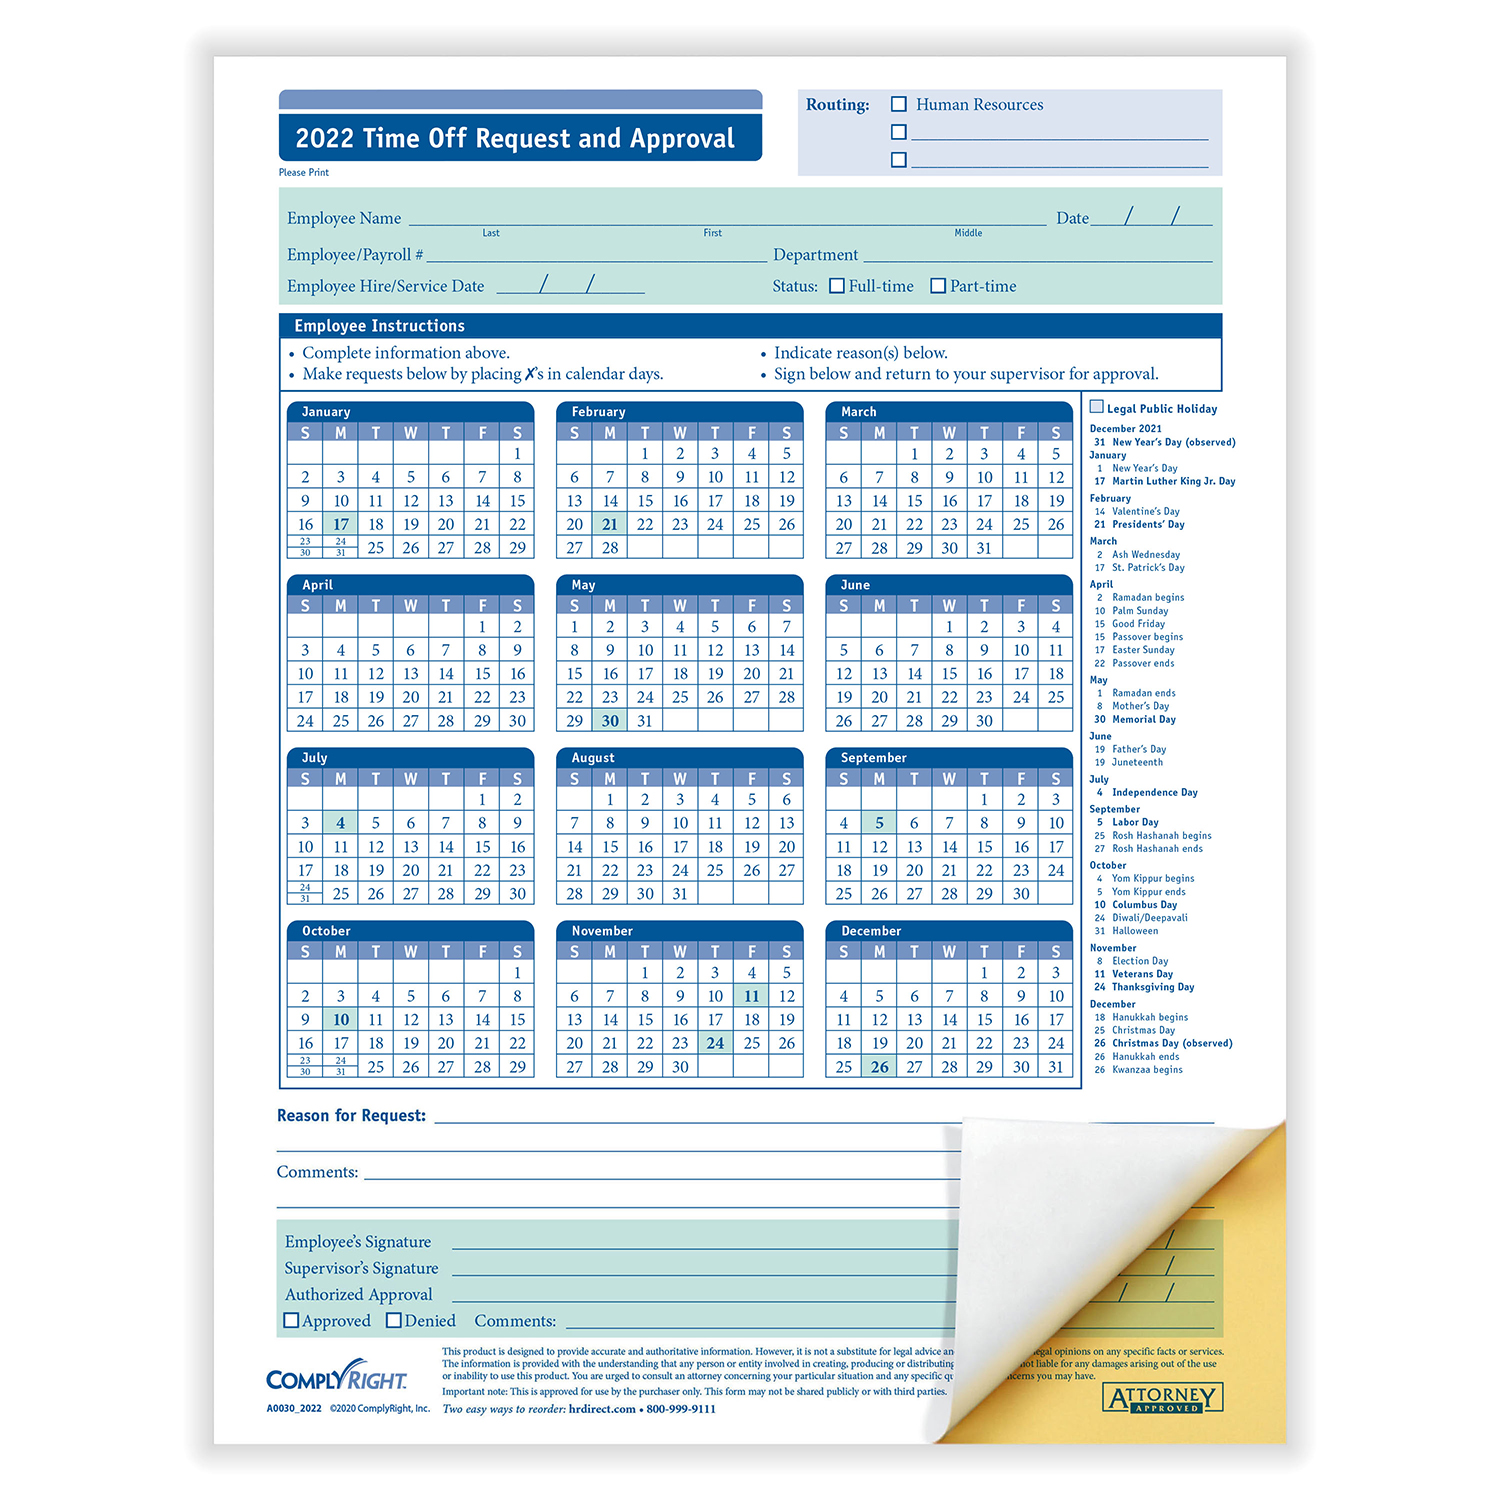 2-Part Carbonless Time Off Request and Approval Form